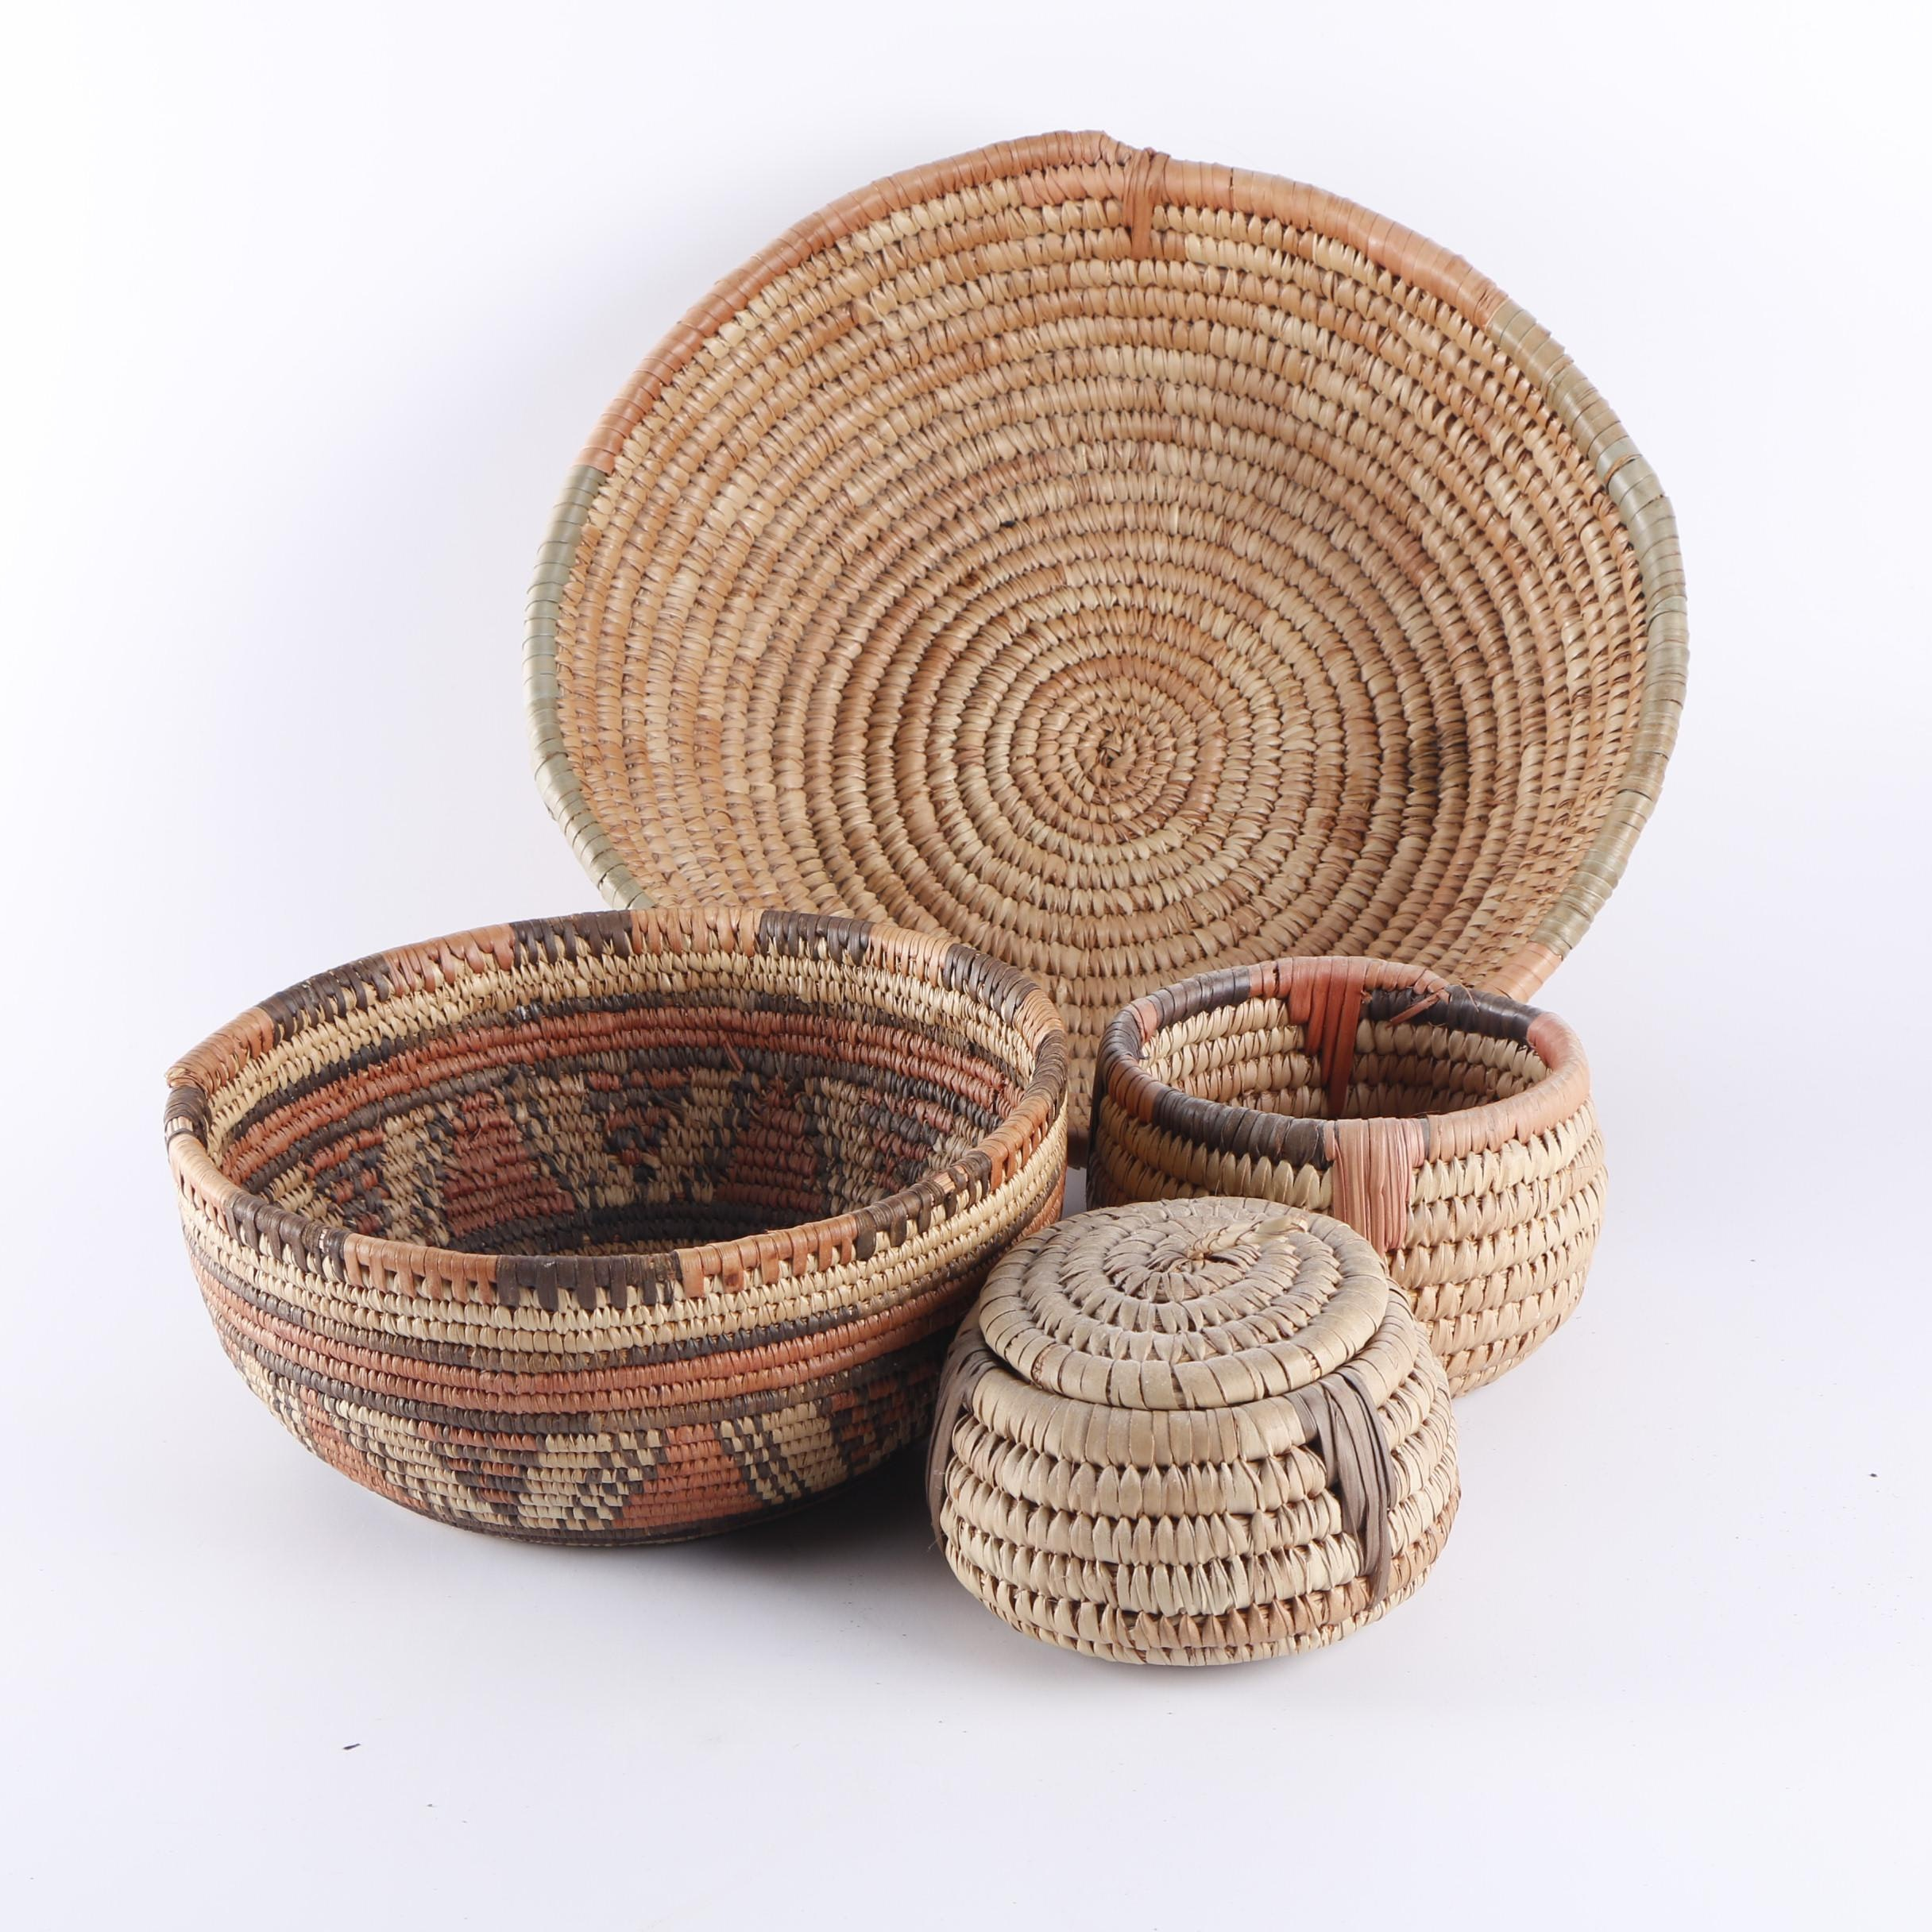 Vintage African Style Coil Baskets